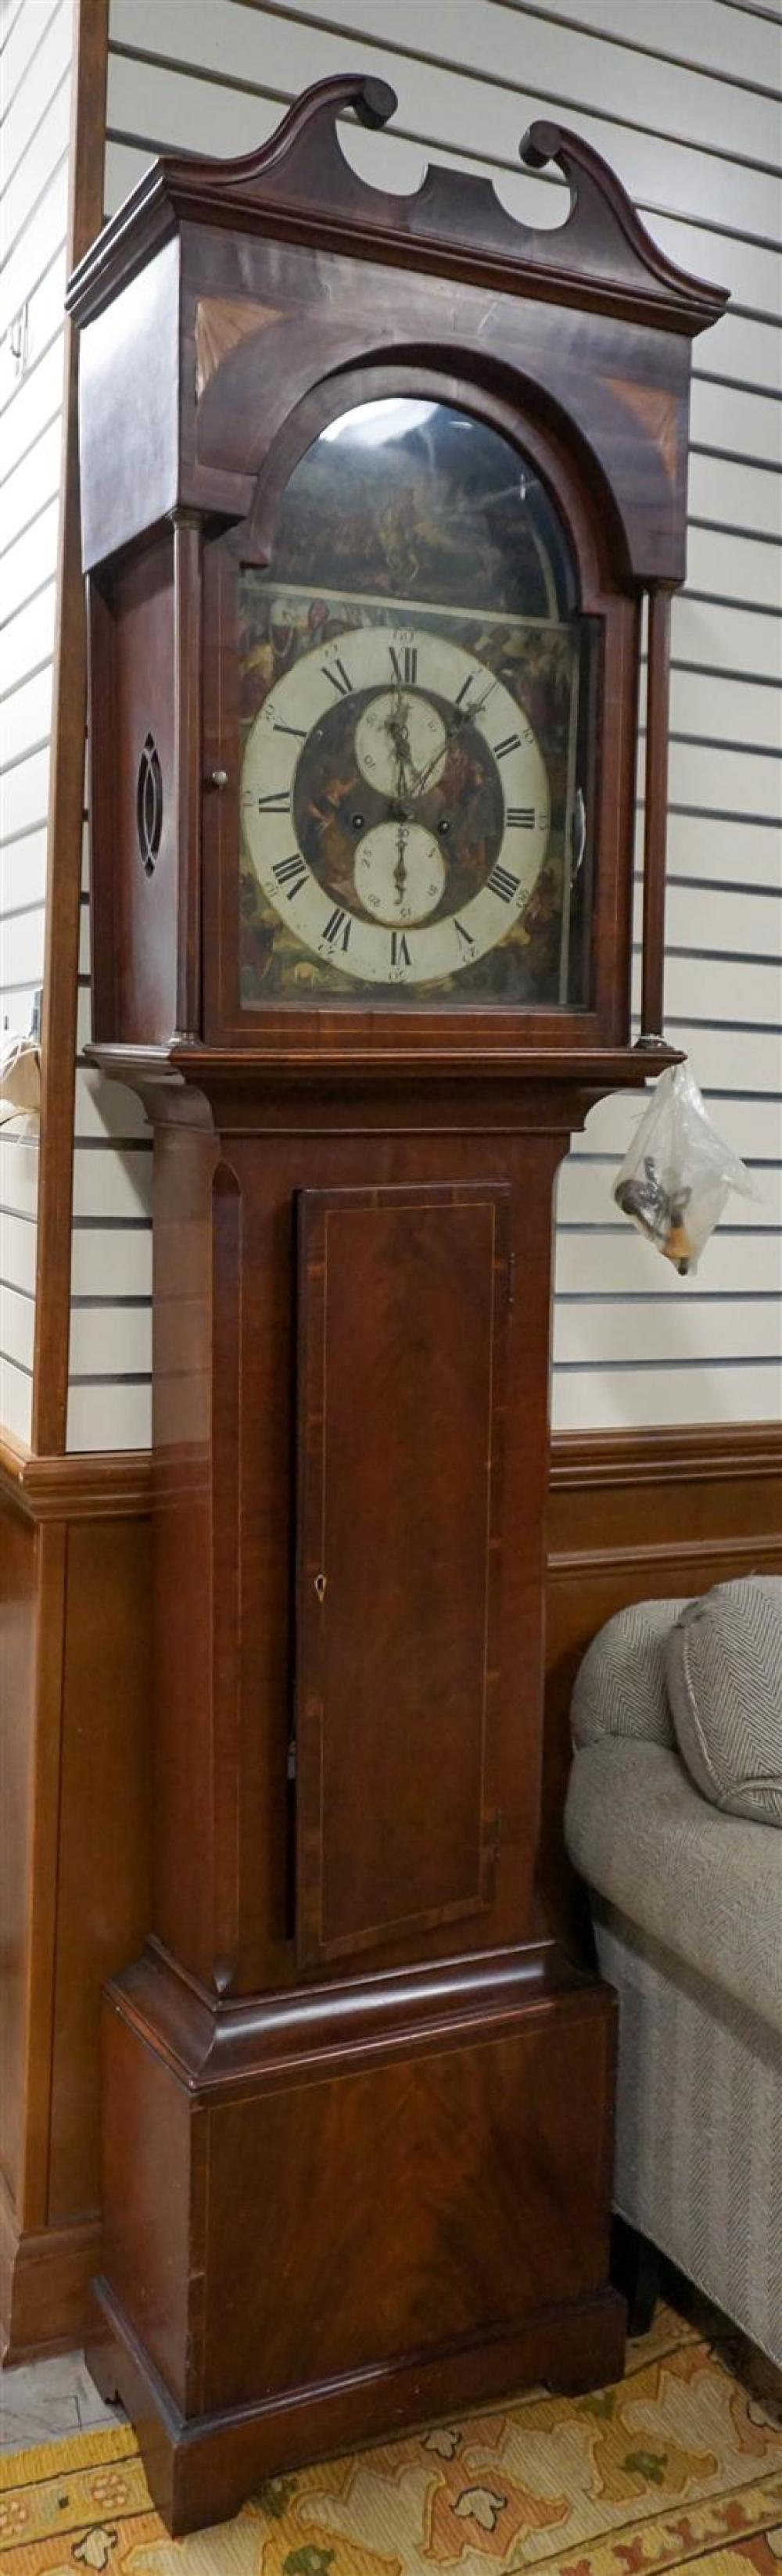 Federal Satinwood Inlaid Mahogany Grandfather's Clock, Height: 82 in